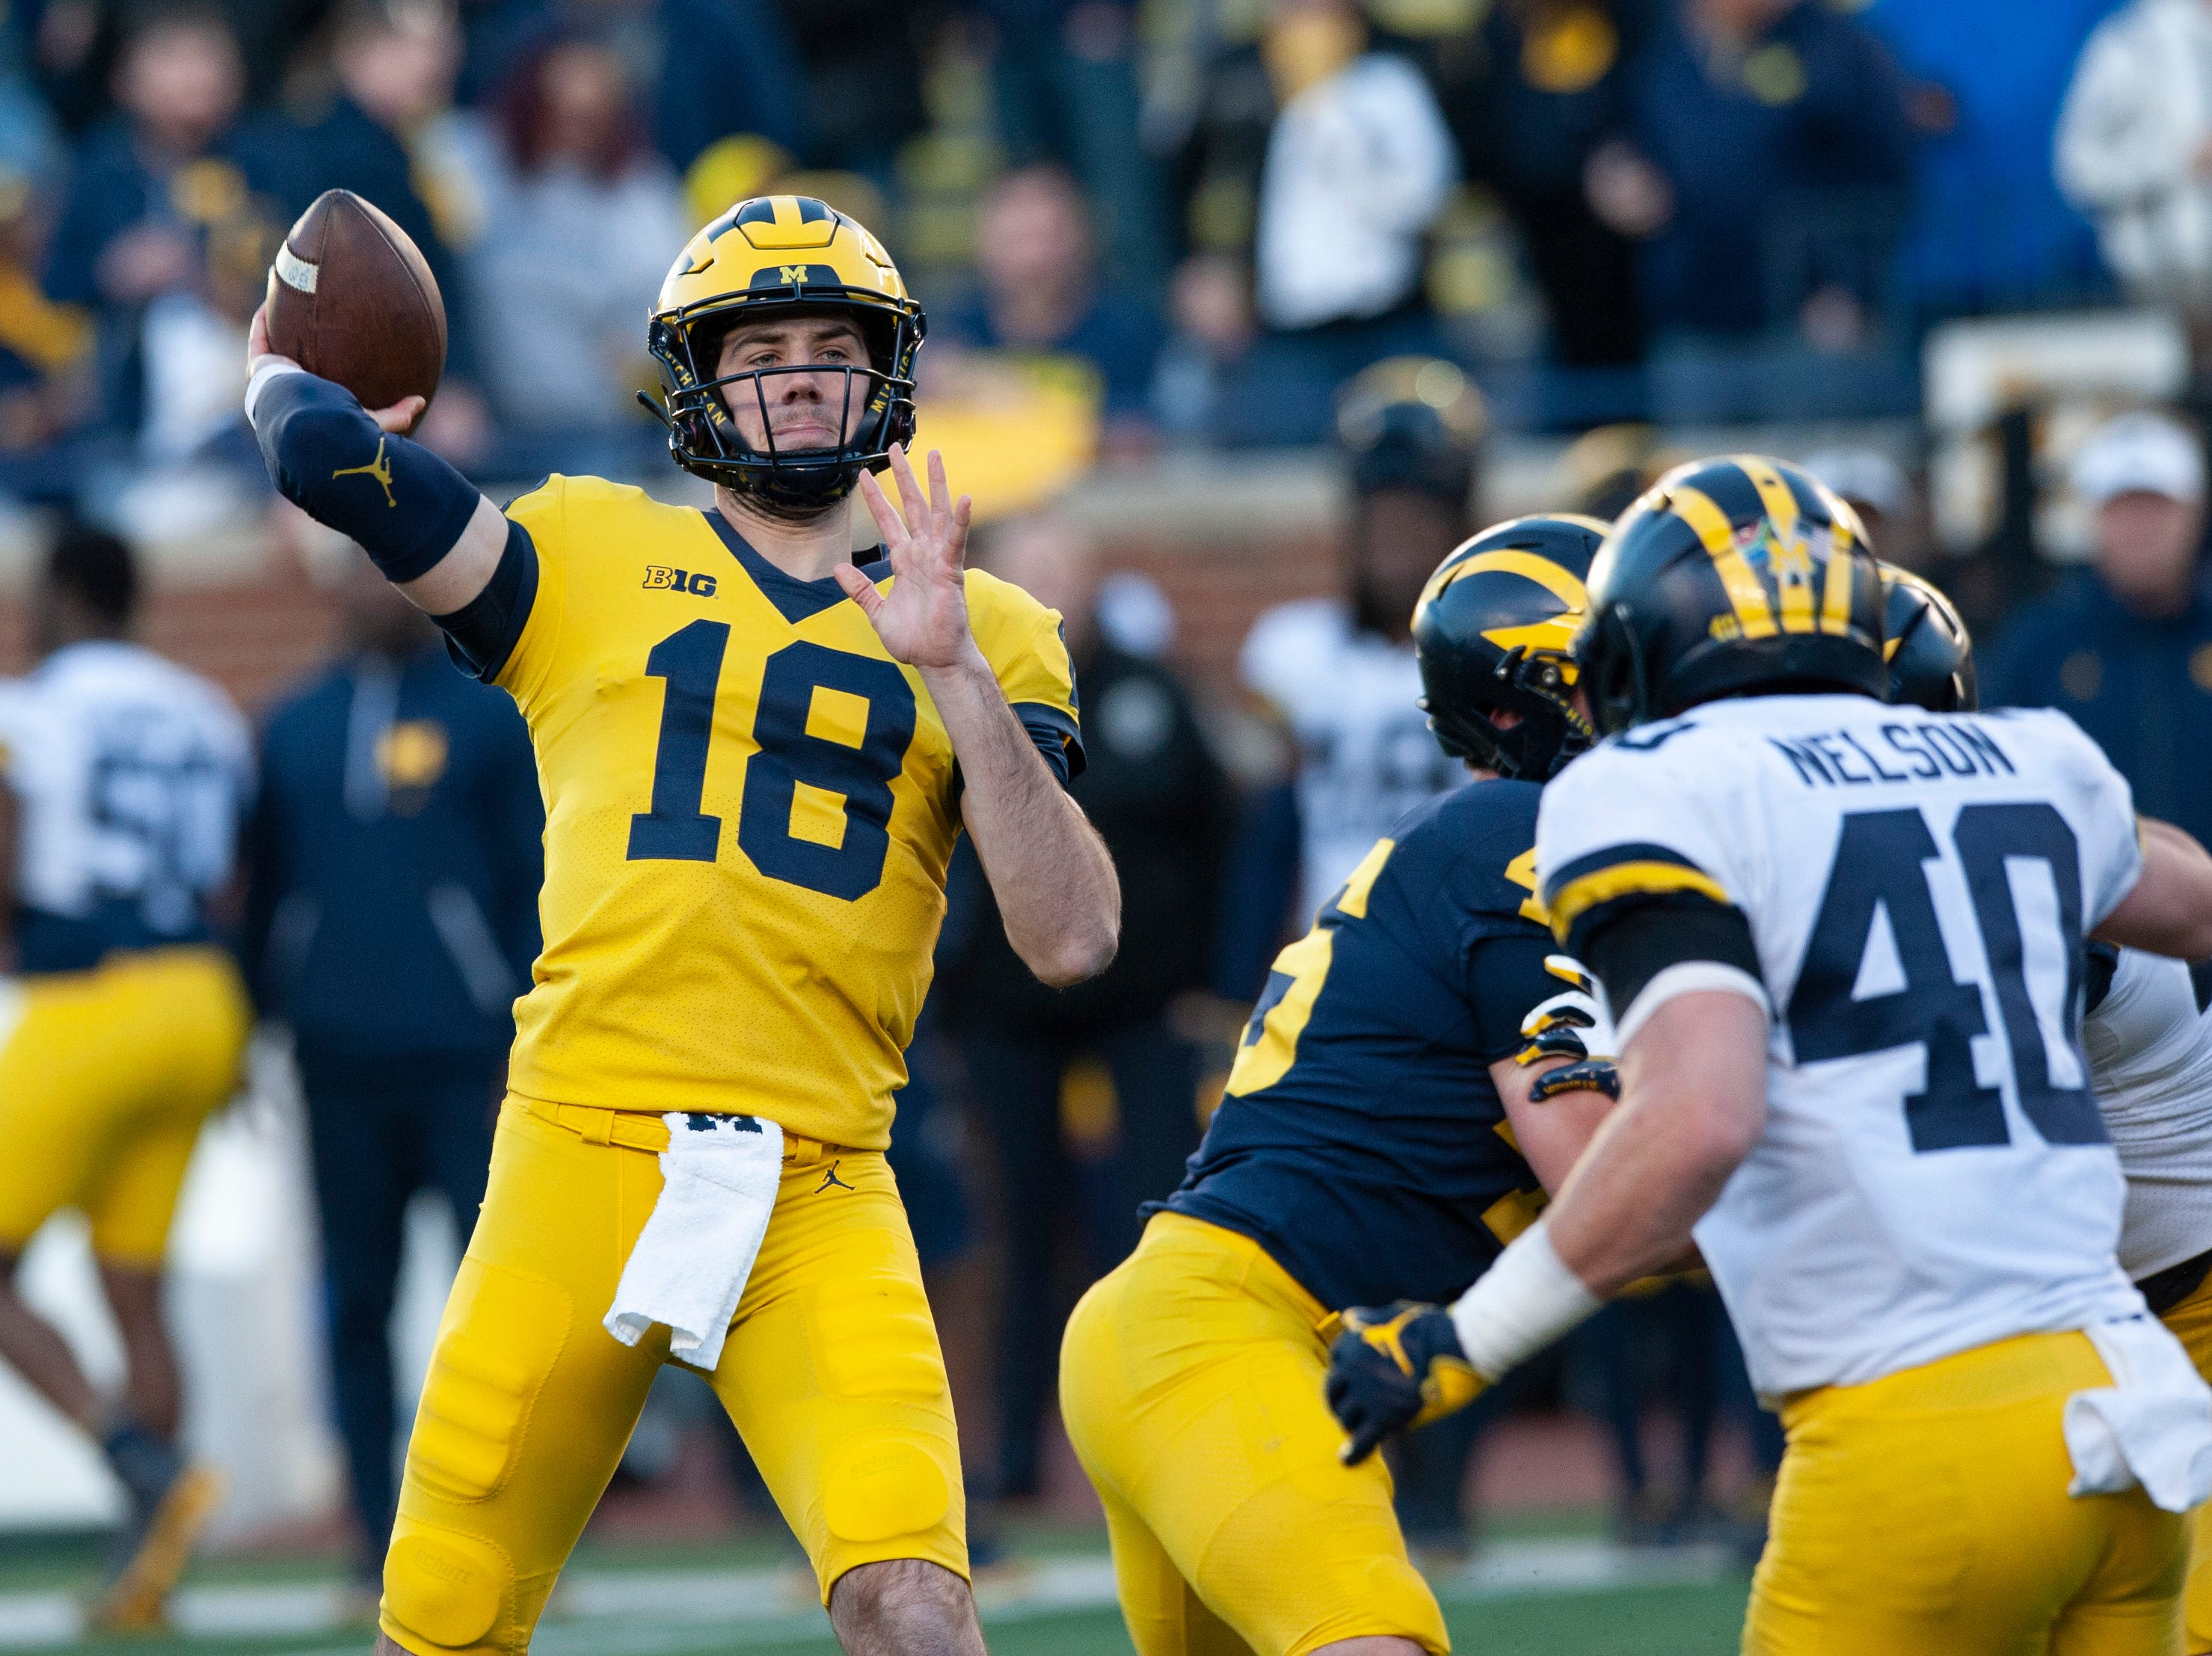 Michigan QB Brandon Peters throws a pass during the scrimmage.